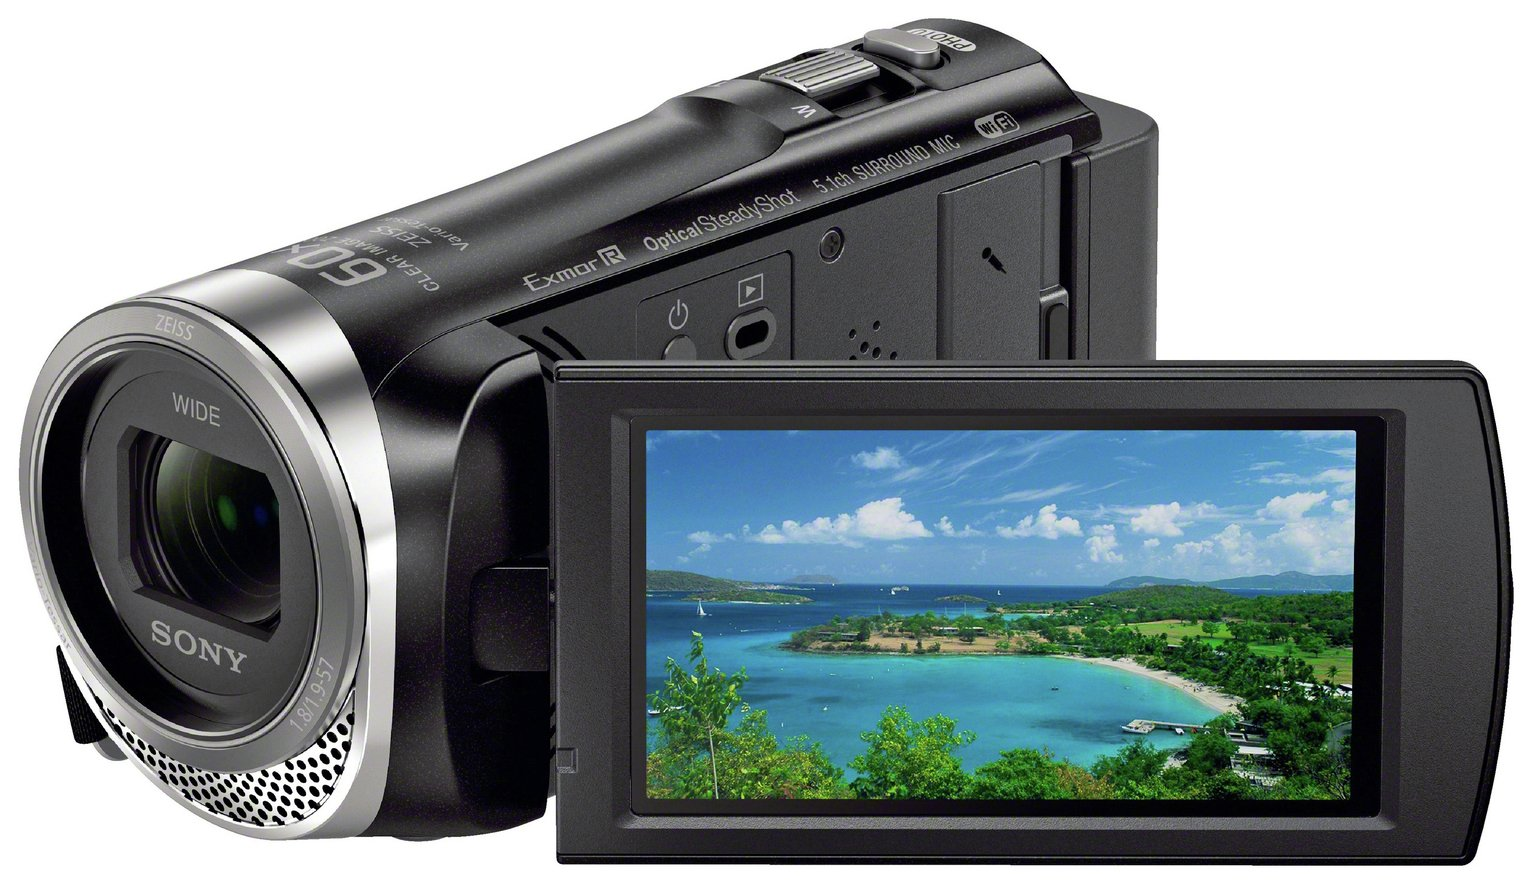 Sony HDR-CX450 1080p Camcorder - Black